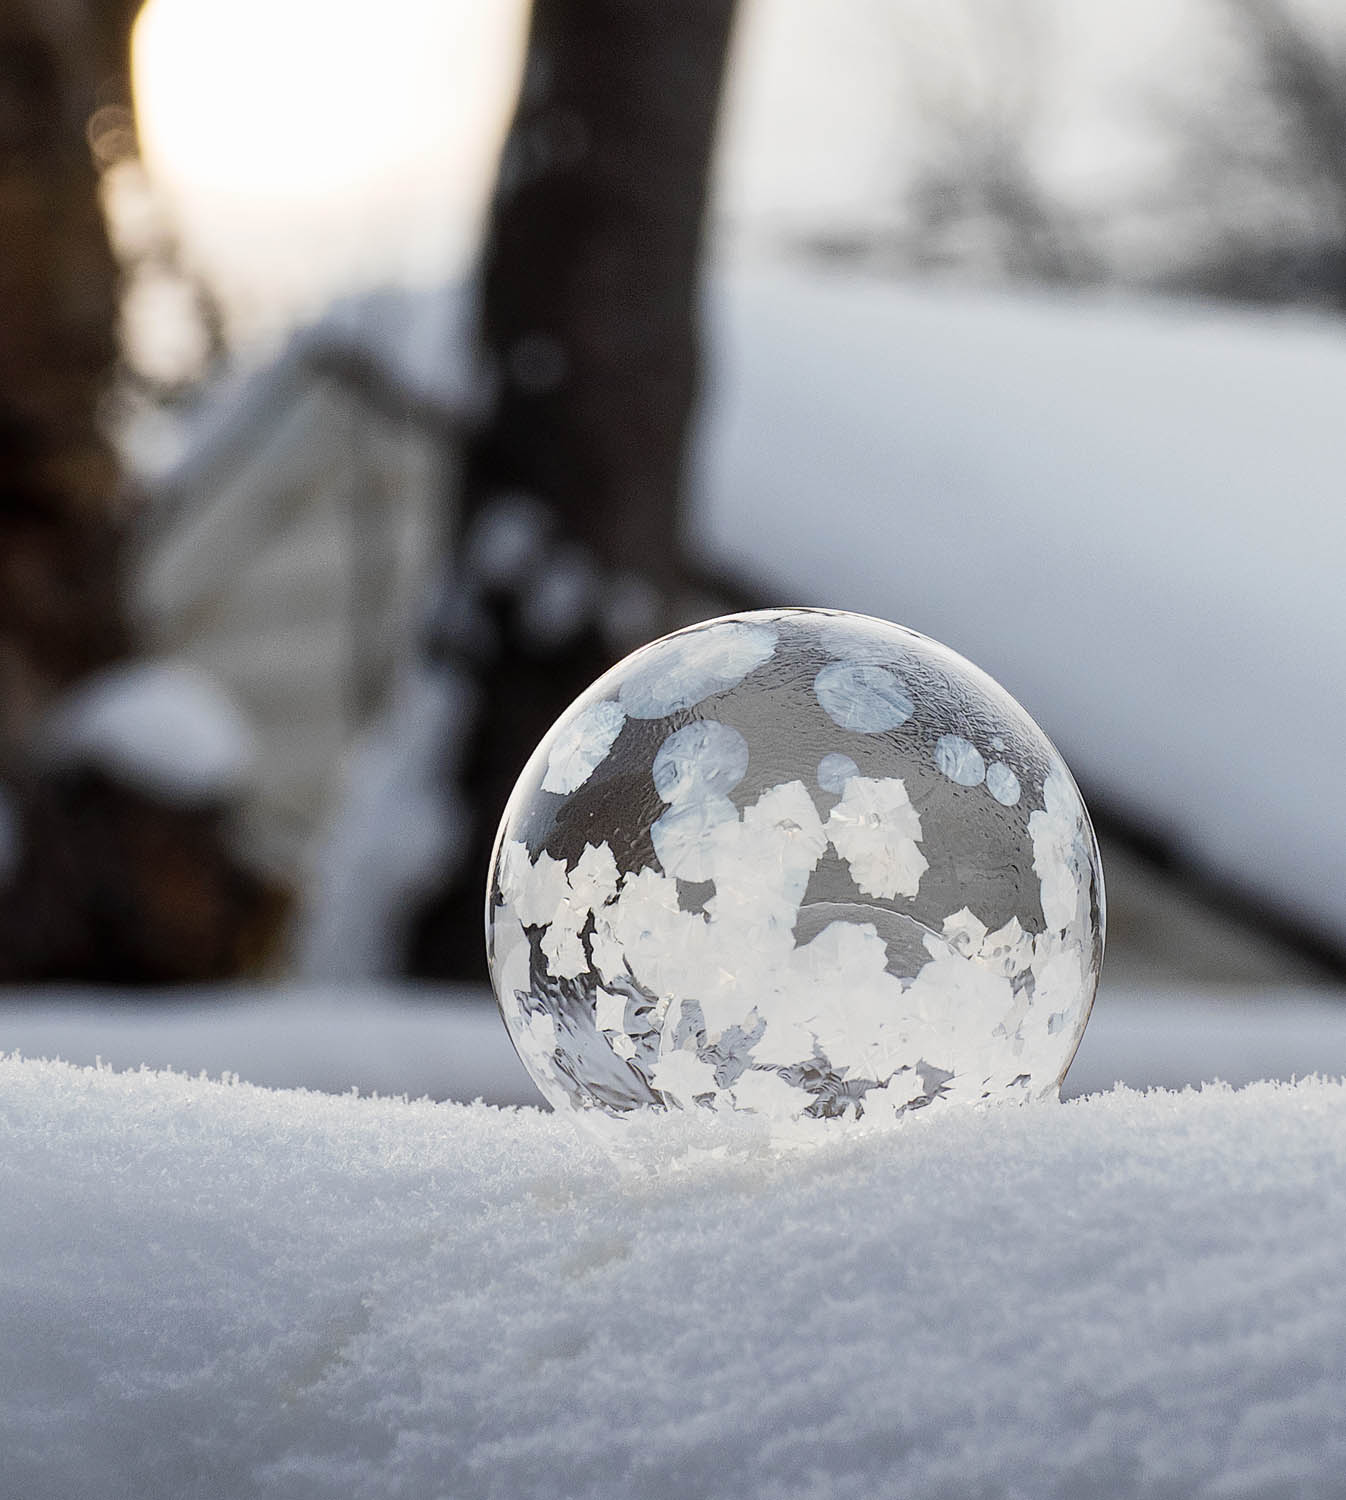 Image: So cold we can freeze bubbles before they pop